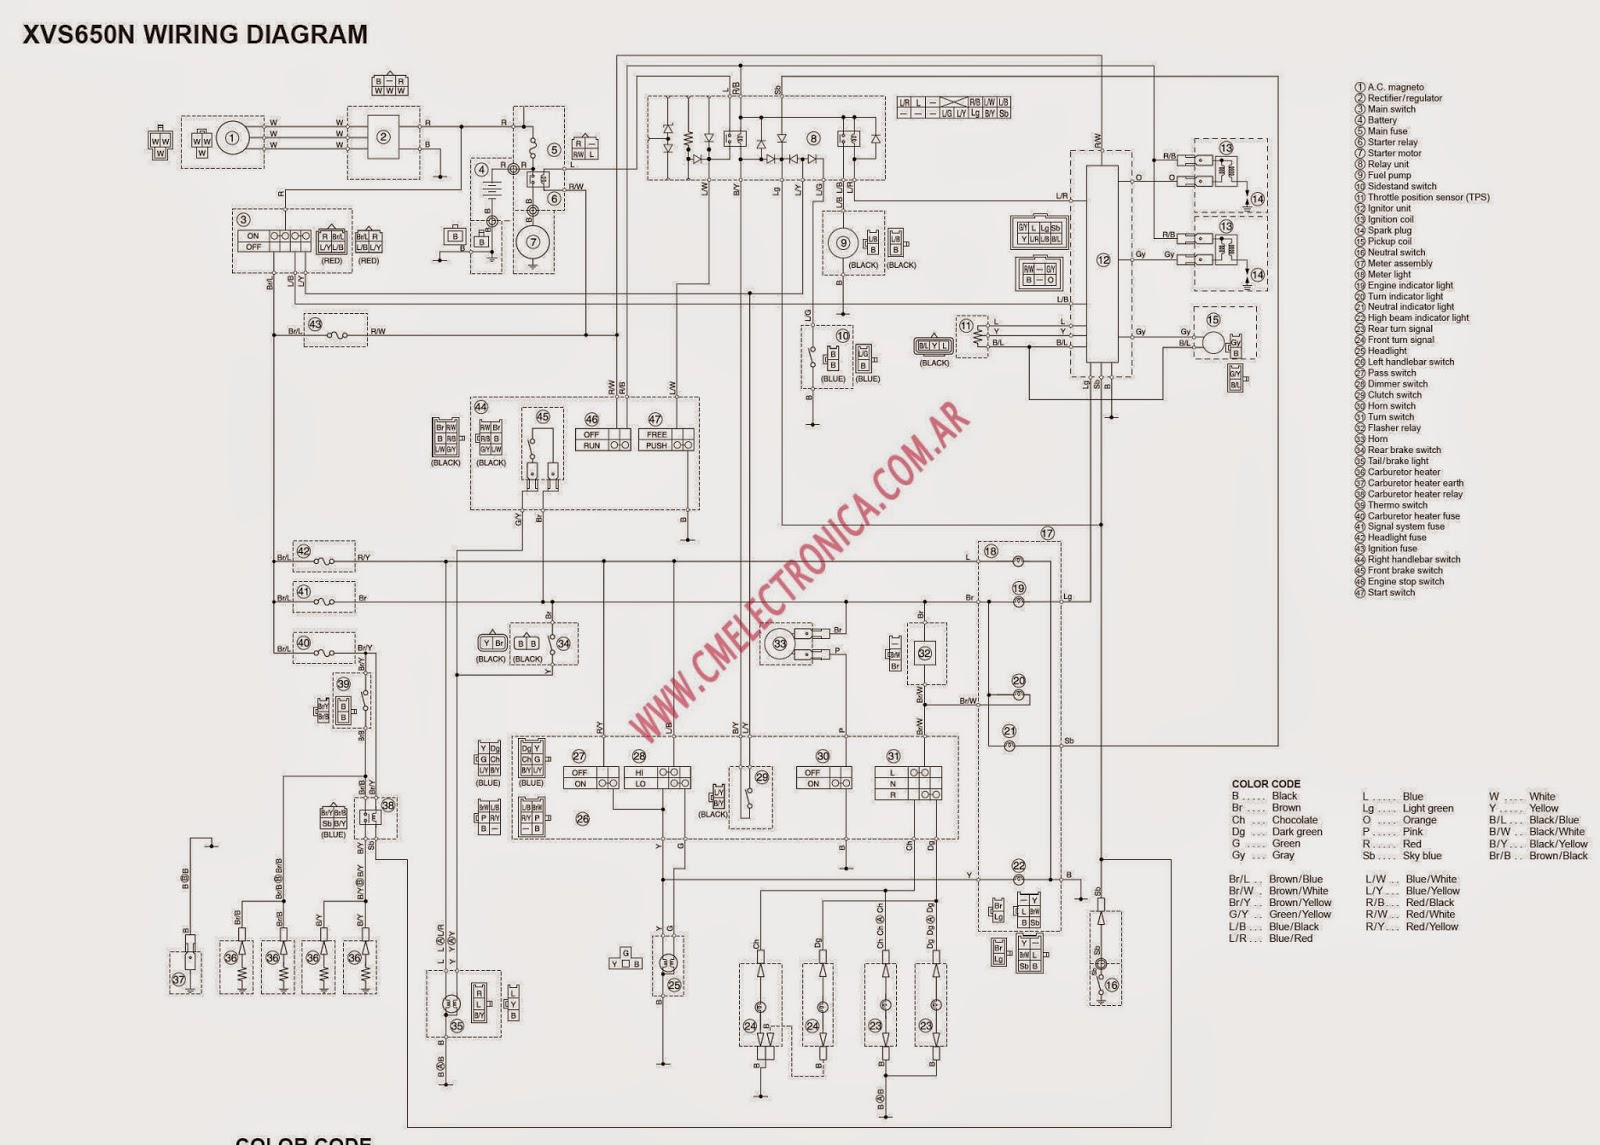 medium resolution of yamaha 650 chopper wiring diagrams wiring diagram todays1999 yamaha 650 wiring diagram completed wiring diagrams 1982